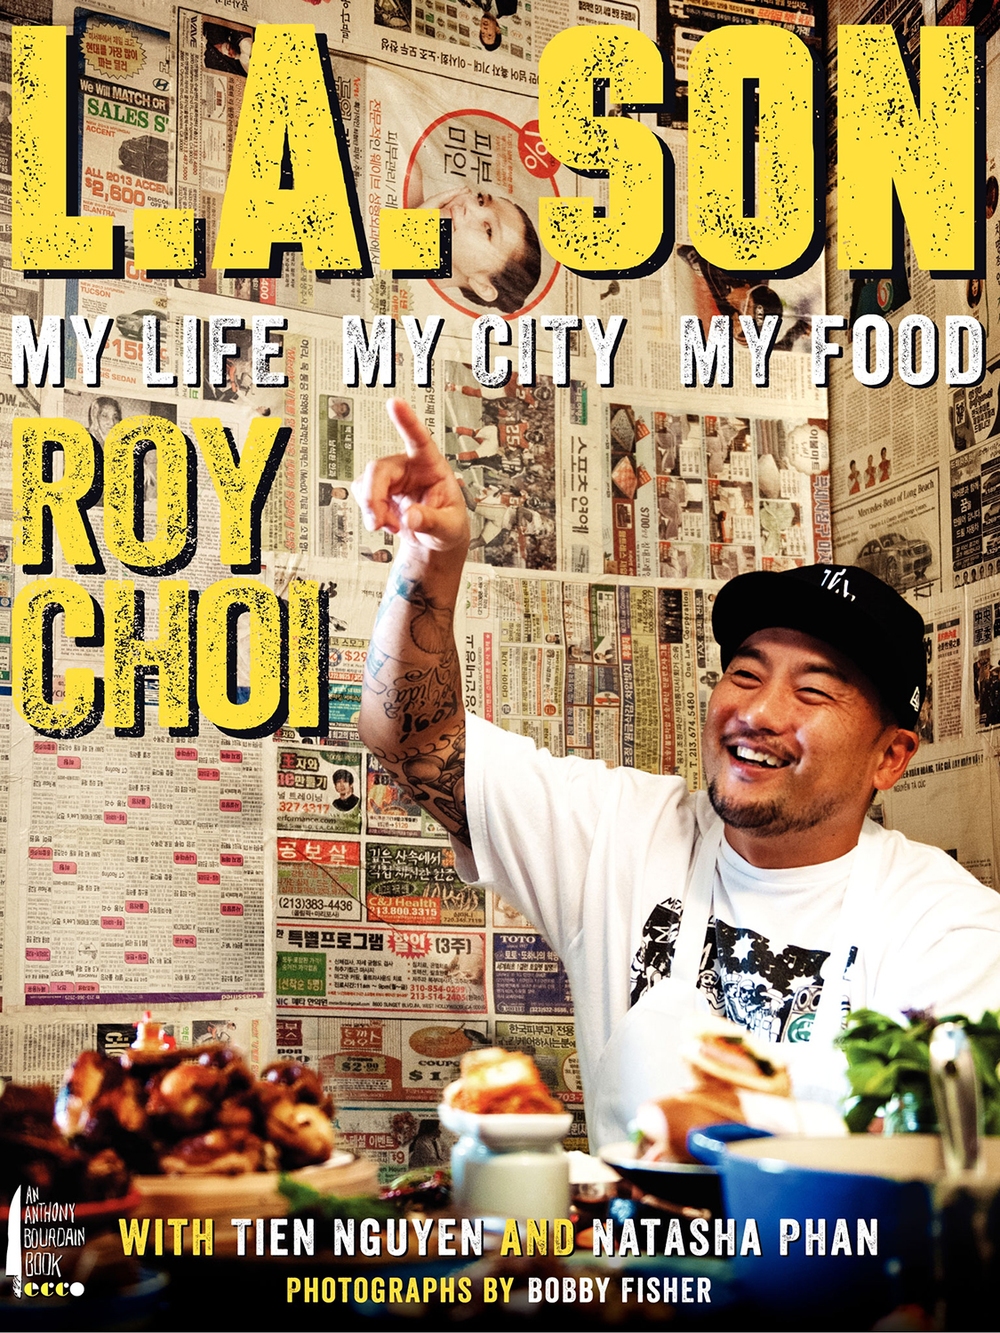 la-son-roy-choi-copy.jpg